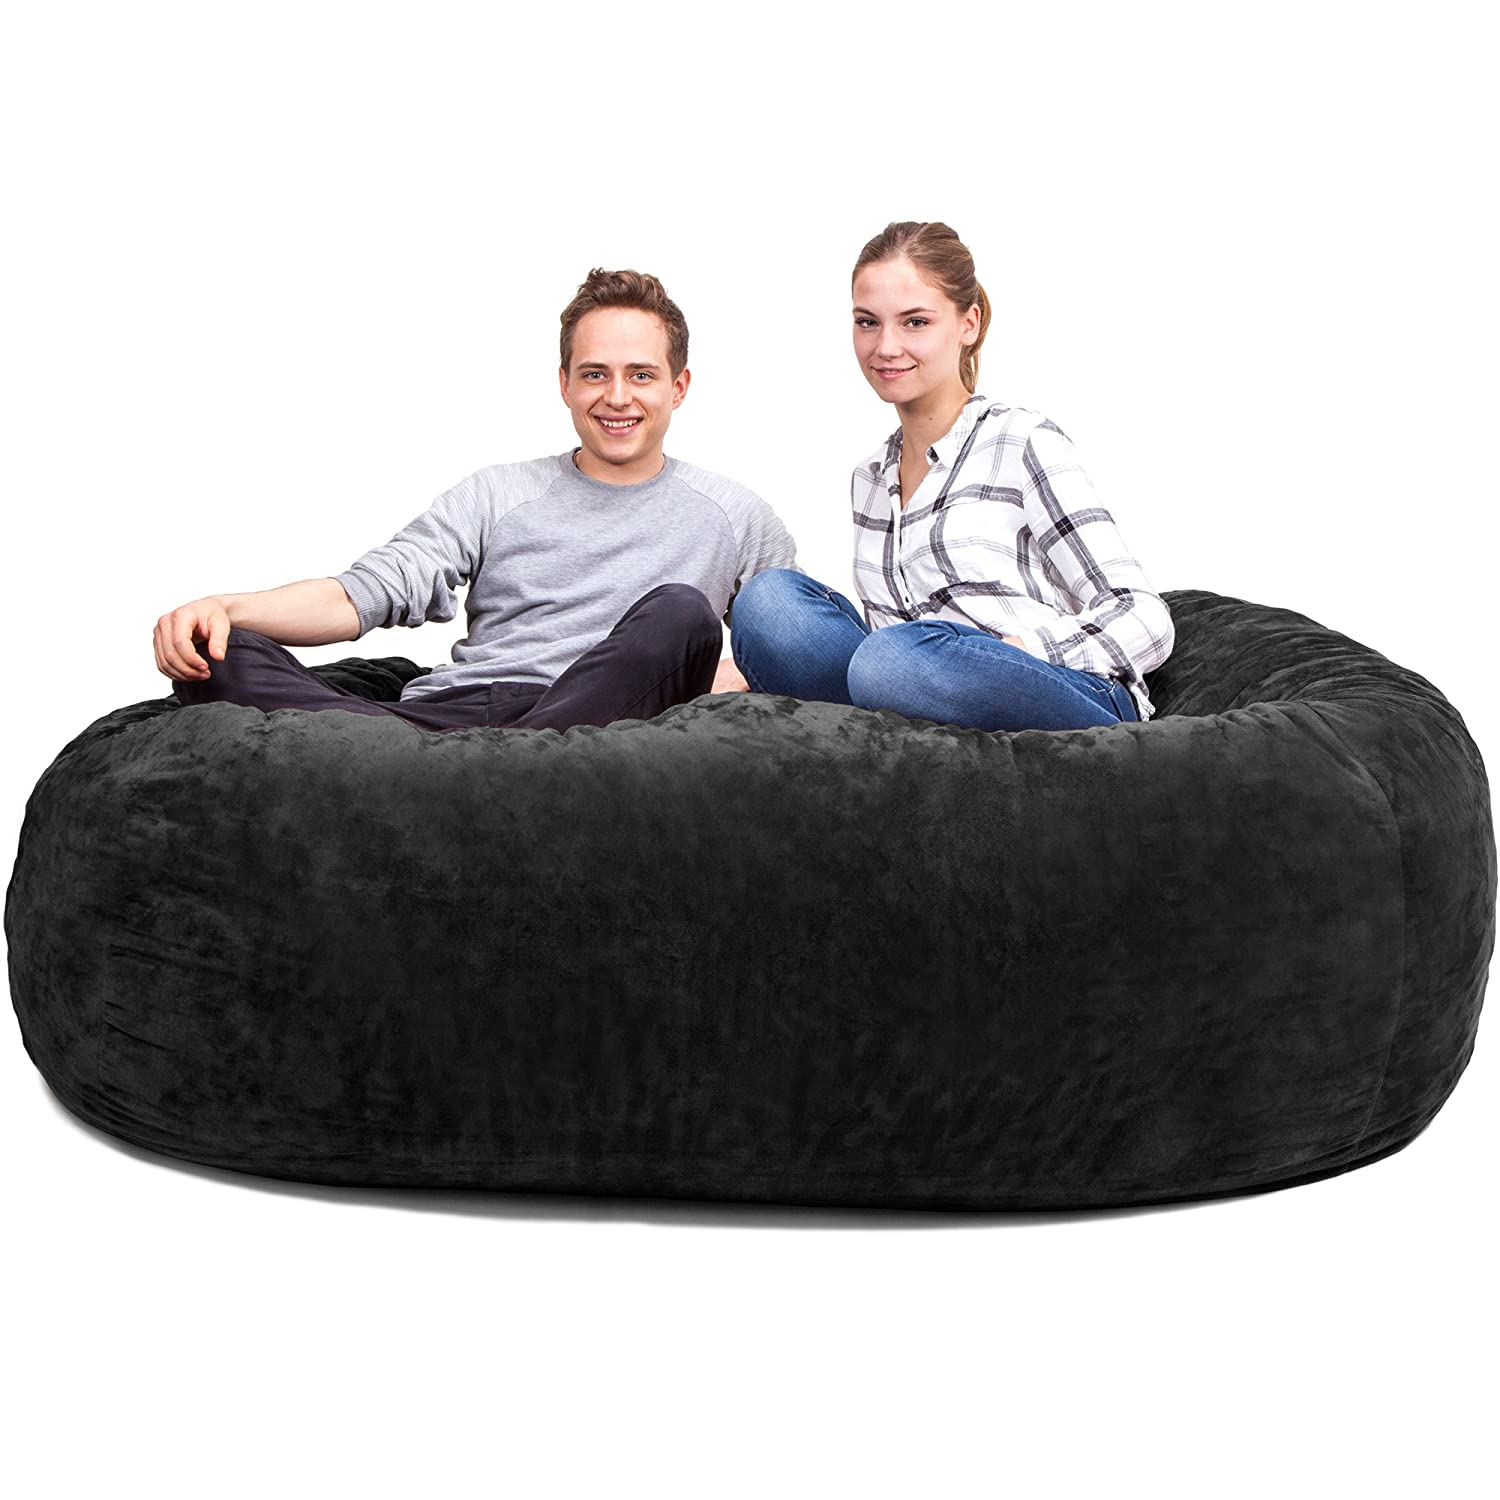 aef9797cba The Biggest beanbag in Europe - Gigantic Bean Bag Chair in Black with  Memory Foam Filling and Machine Washable Cover-Comfortable Cozy Lounge Sack  to Chill